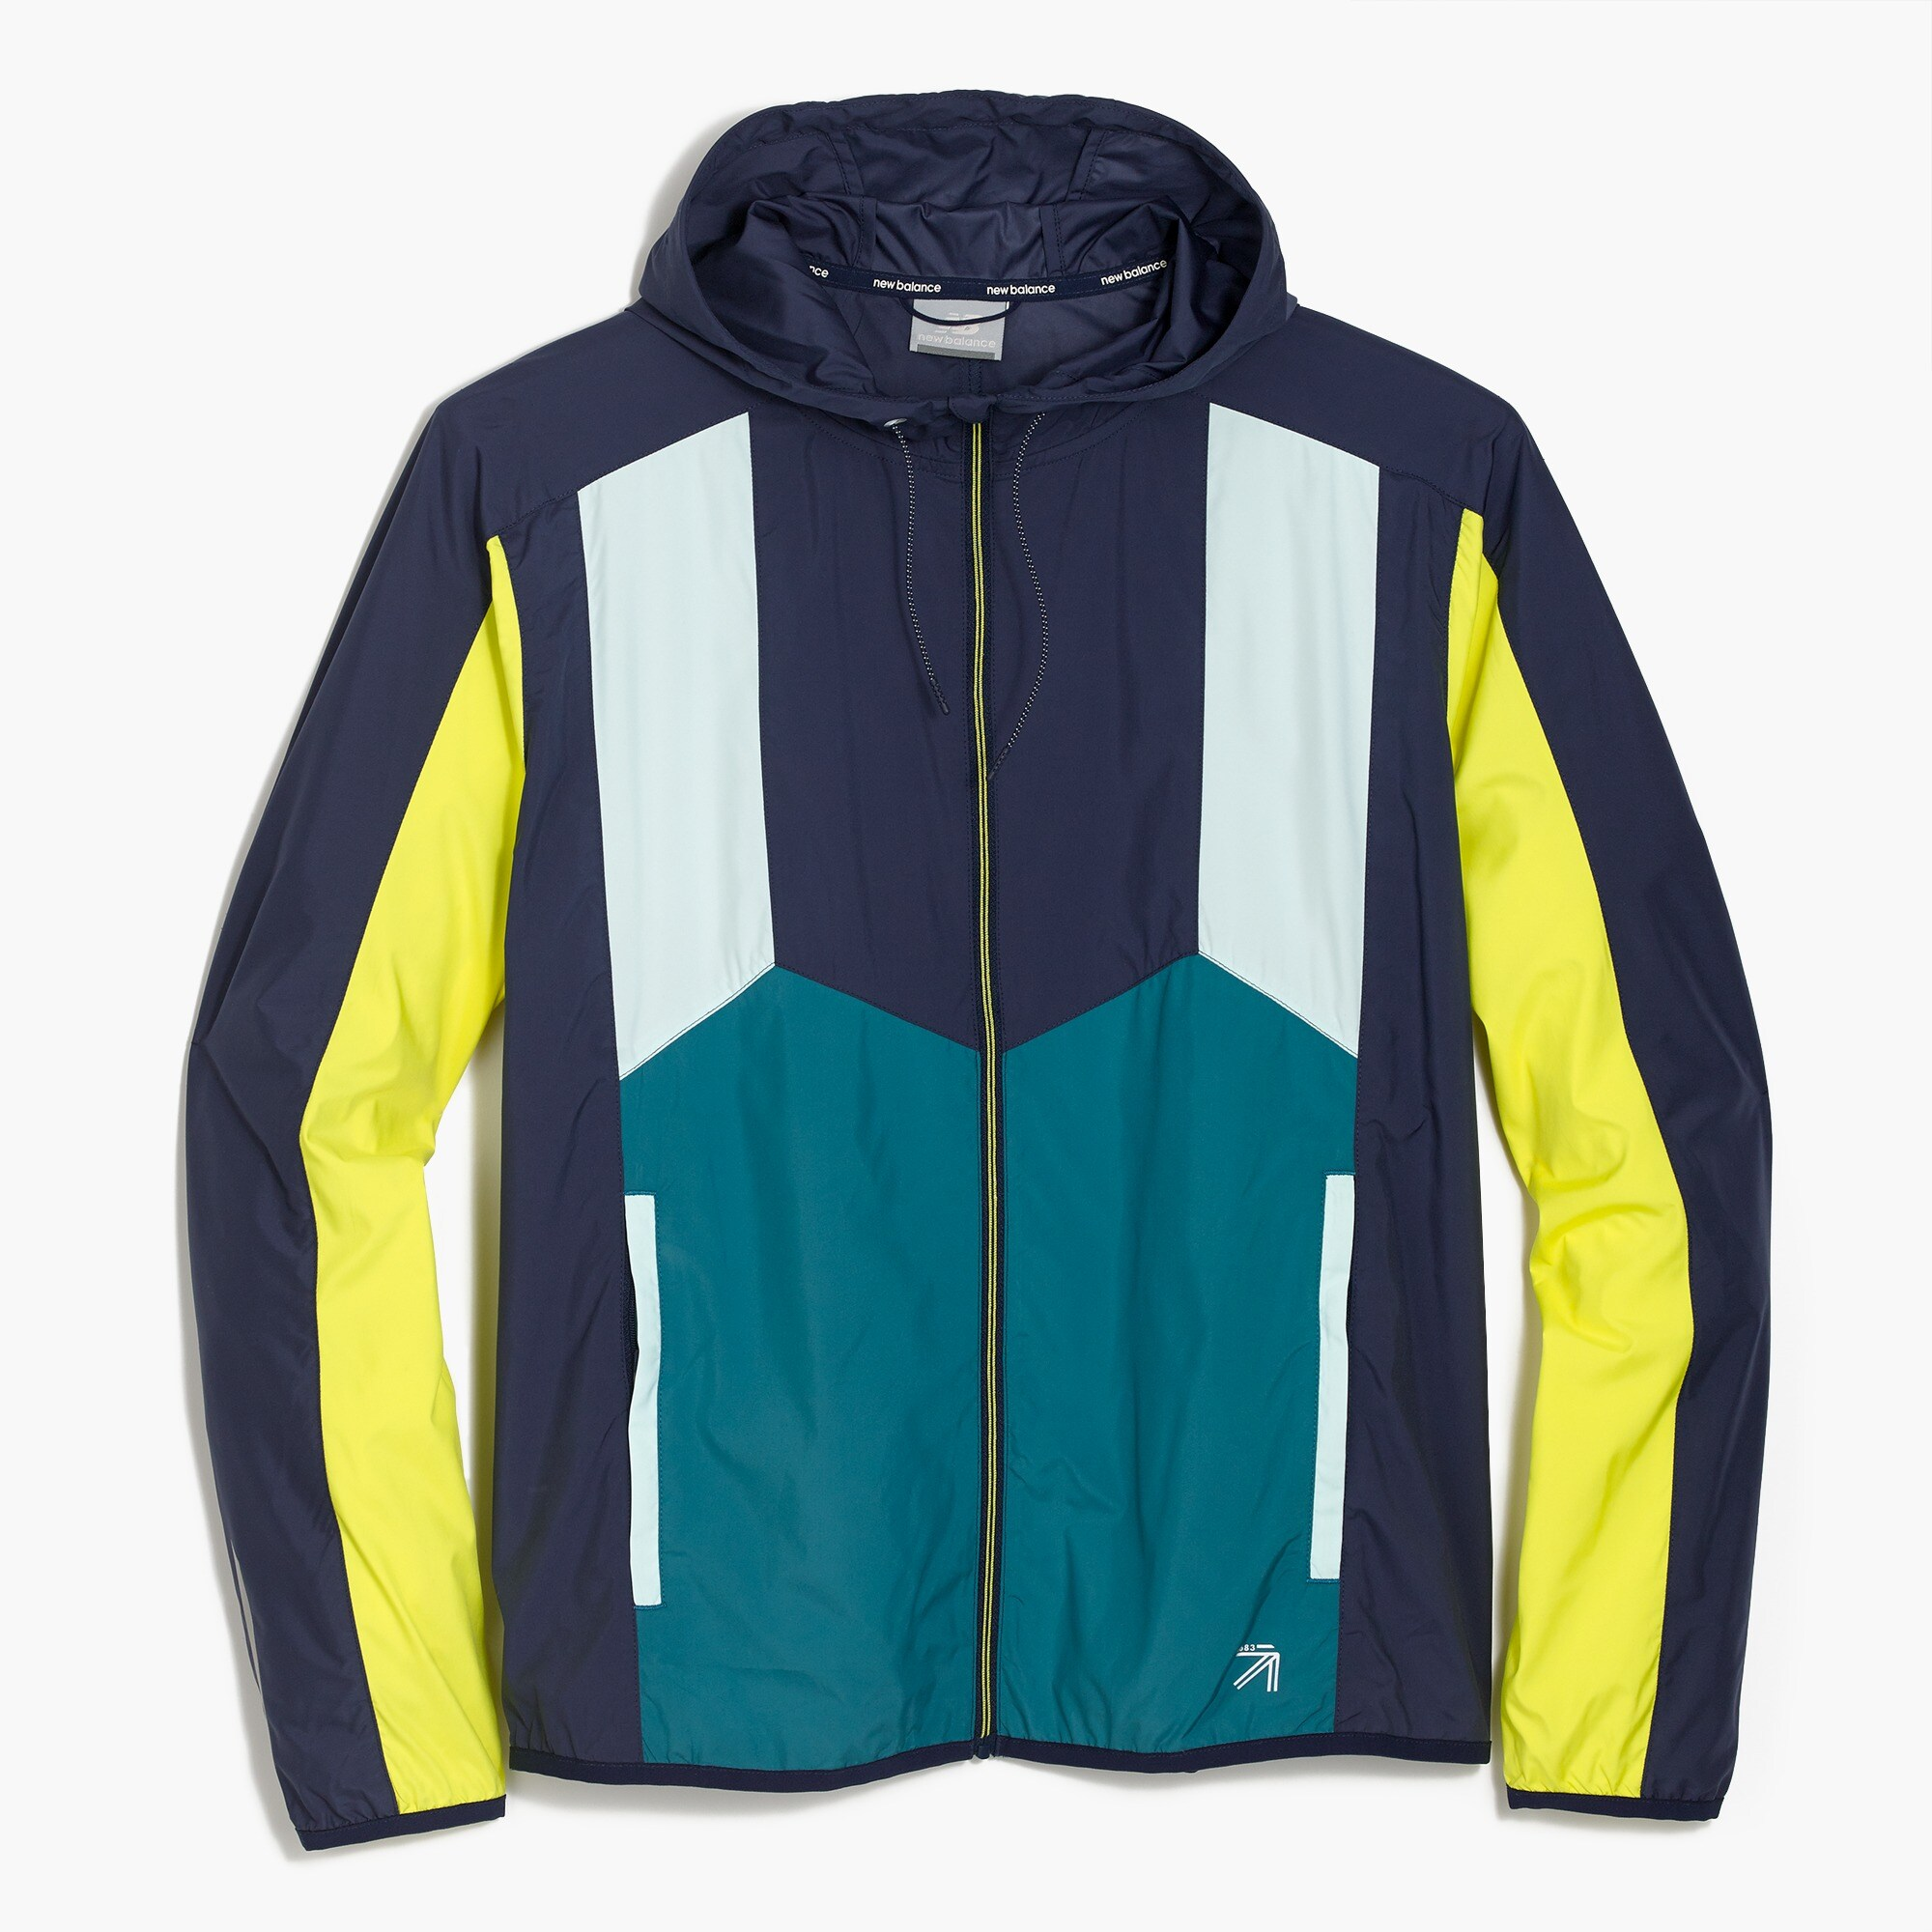 New Balance® for J.Crew colorblock windbreaker jacket